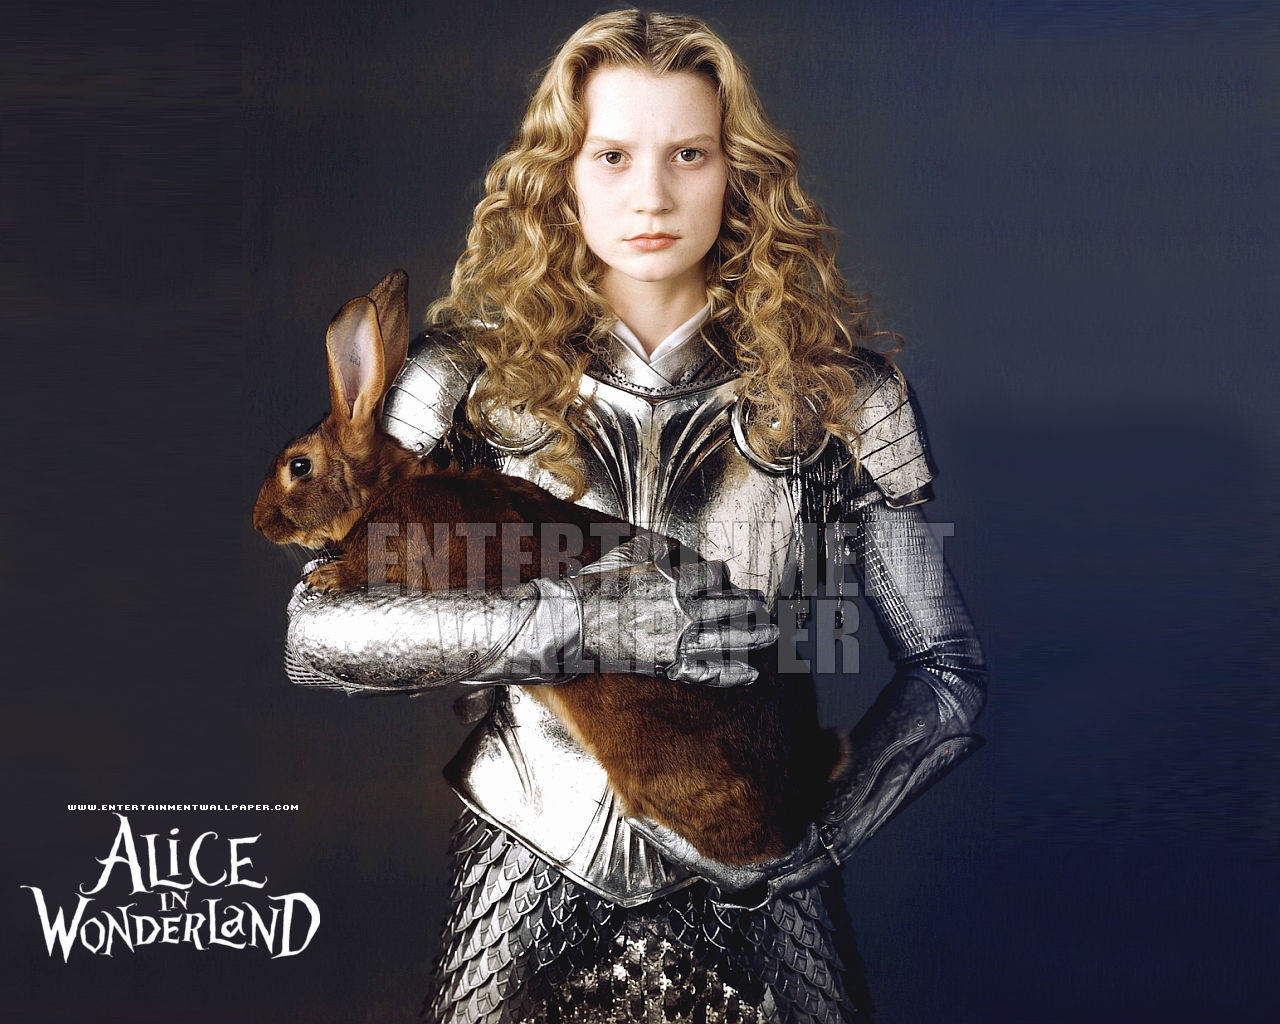 alice wonderland 2 It's through the looking glass again for johnny depp and mia wasikowska, who are now officially set for alice in wonderland 2.